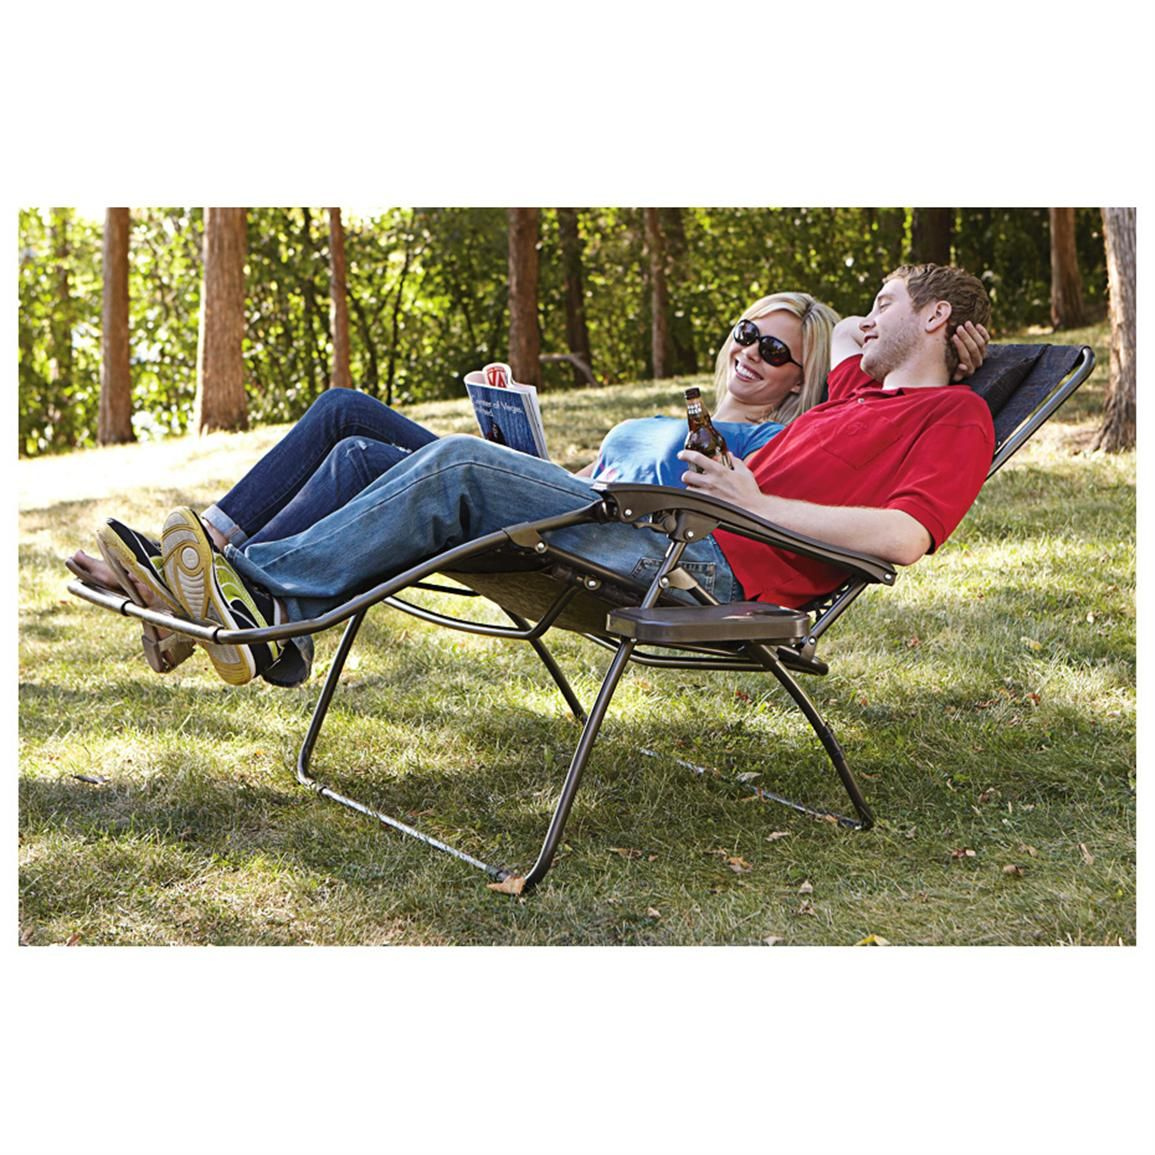 Amazing Bliss Hammocks® 2 Person Gravity Free Recliner   578462, Chairs At  Sportsmanu0027s